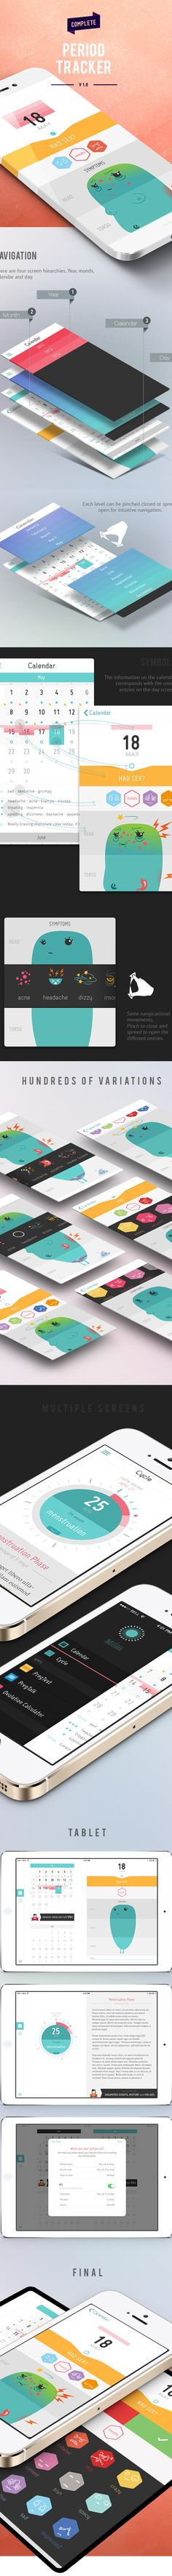 Period Tracker - iPhone App on Behance